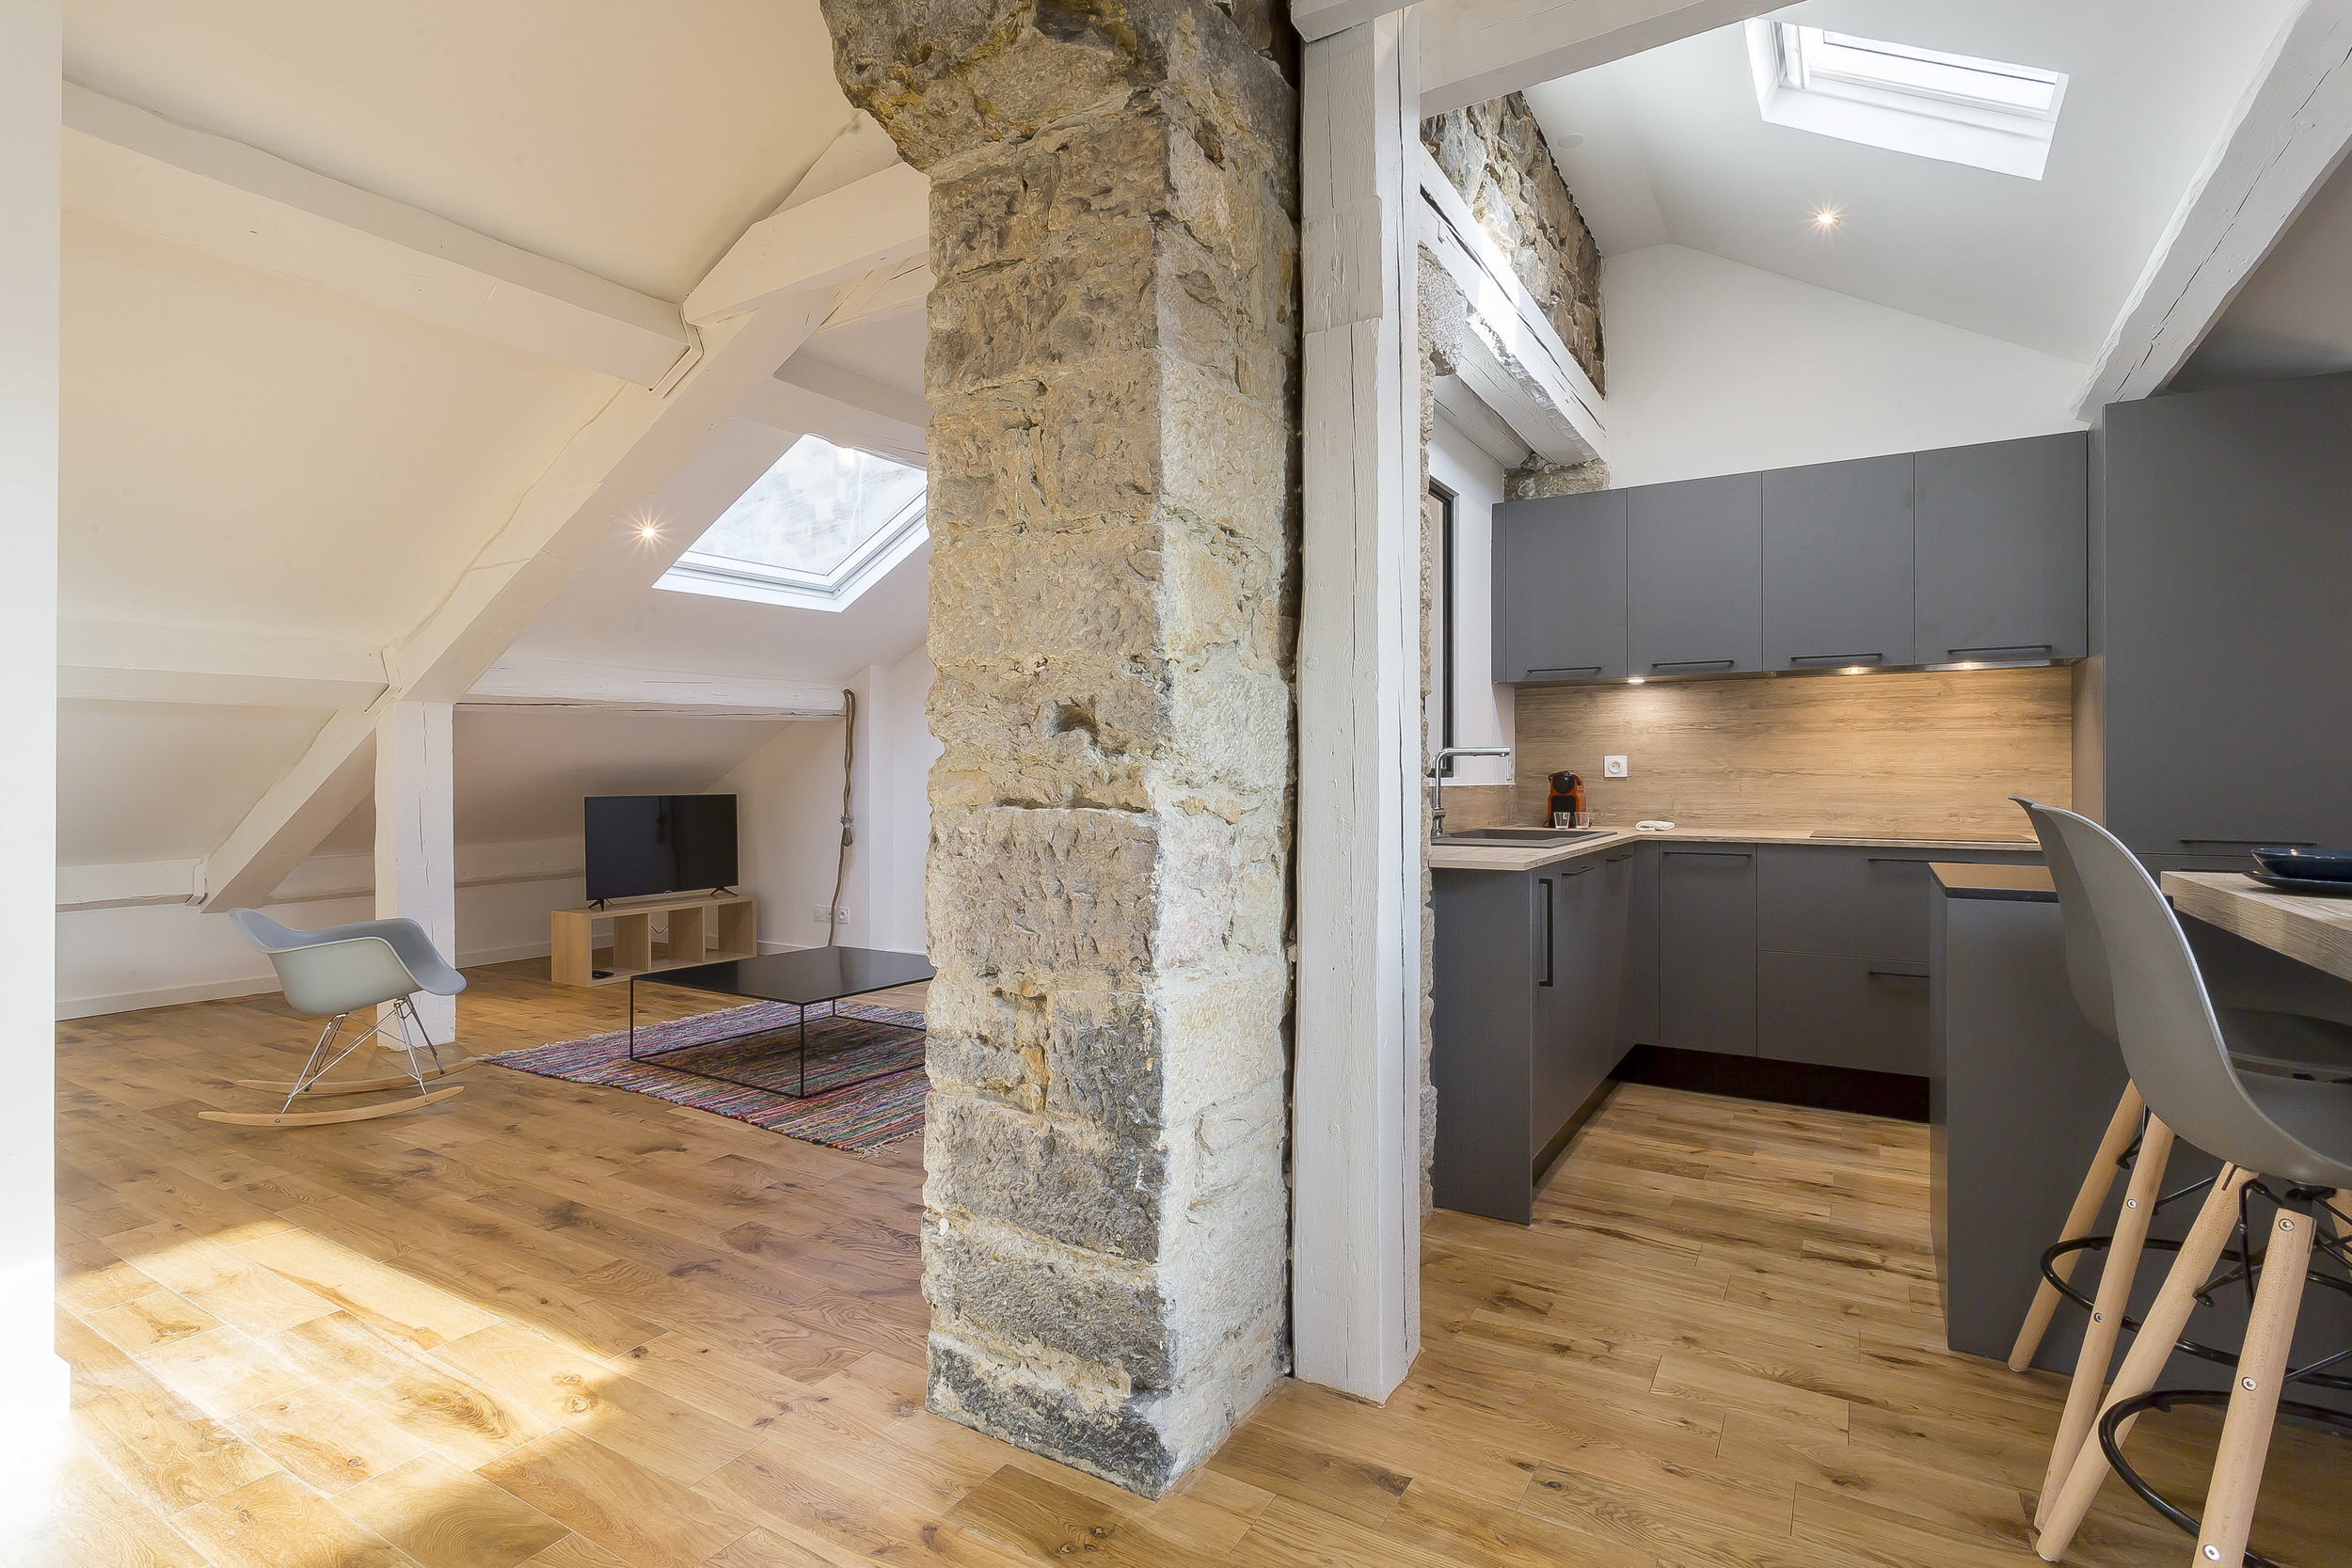 LikeHome - 34 Cours Vitton-8.jpg